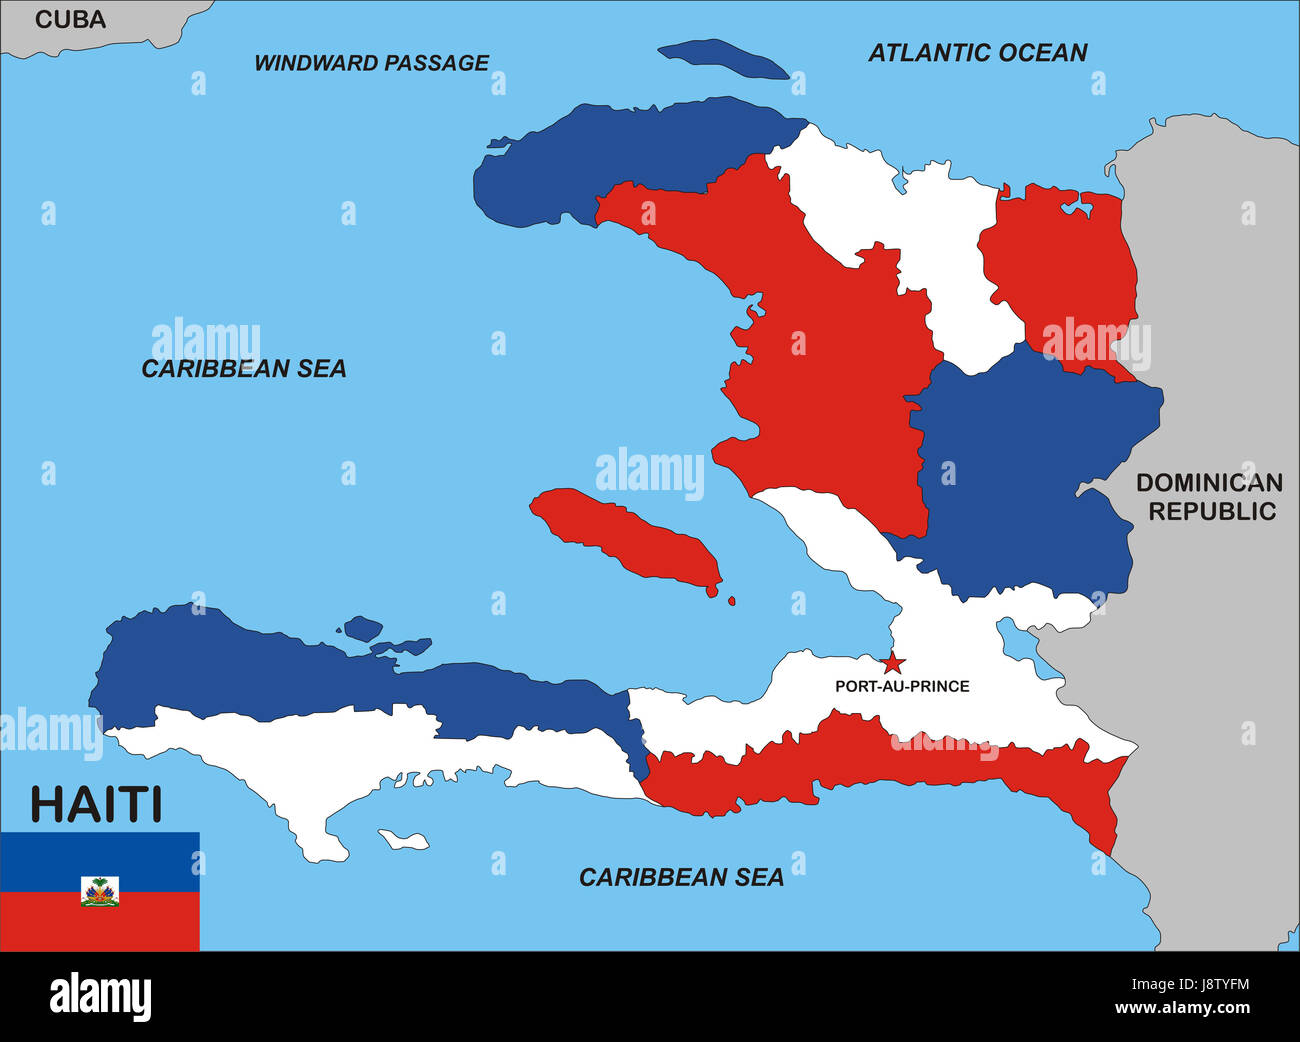 Haiti map atlas map of the world political flag country haiti map atlas map of the world political flag country globe planet gumiabroncs Choice Image